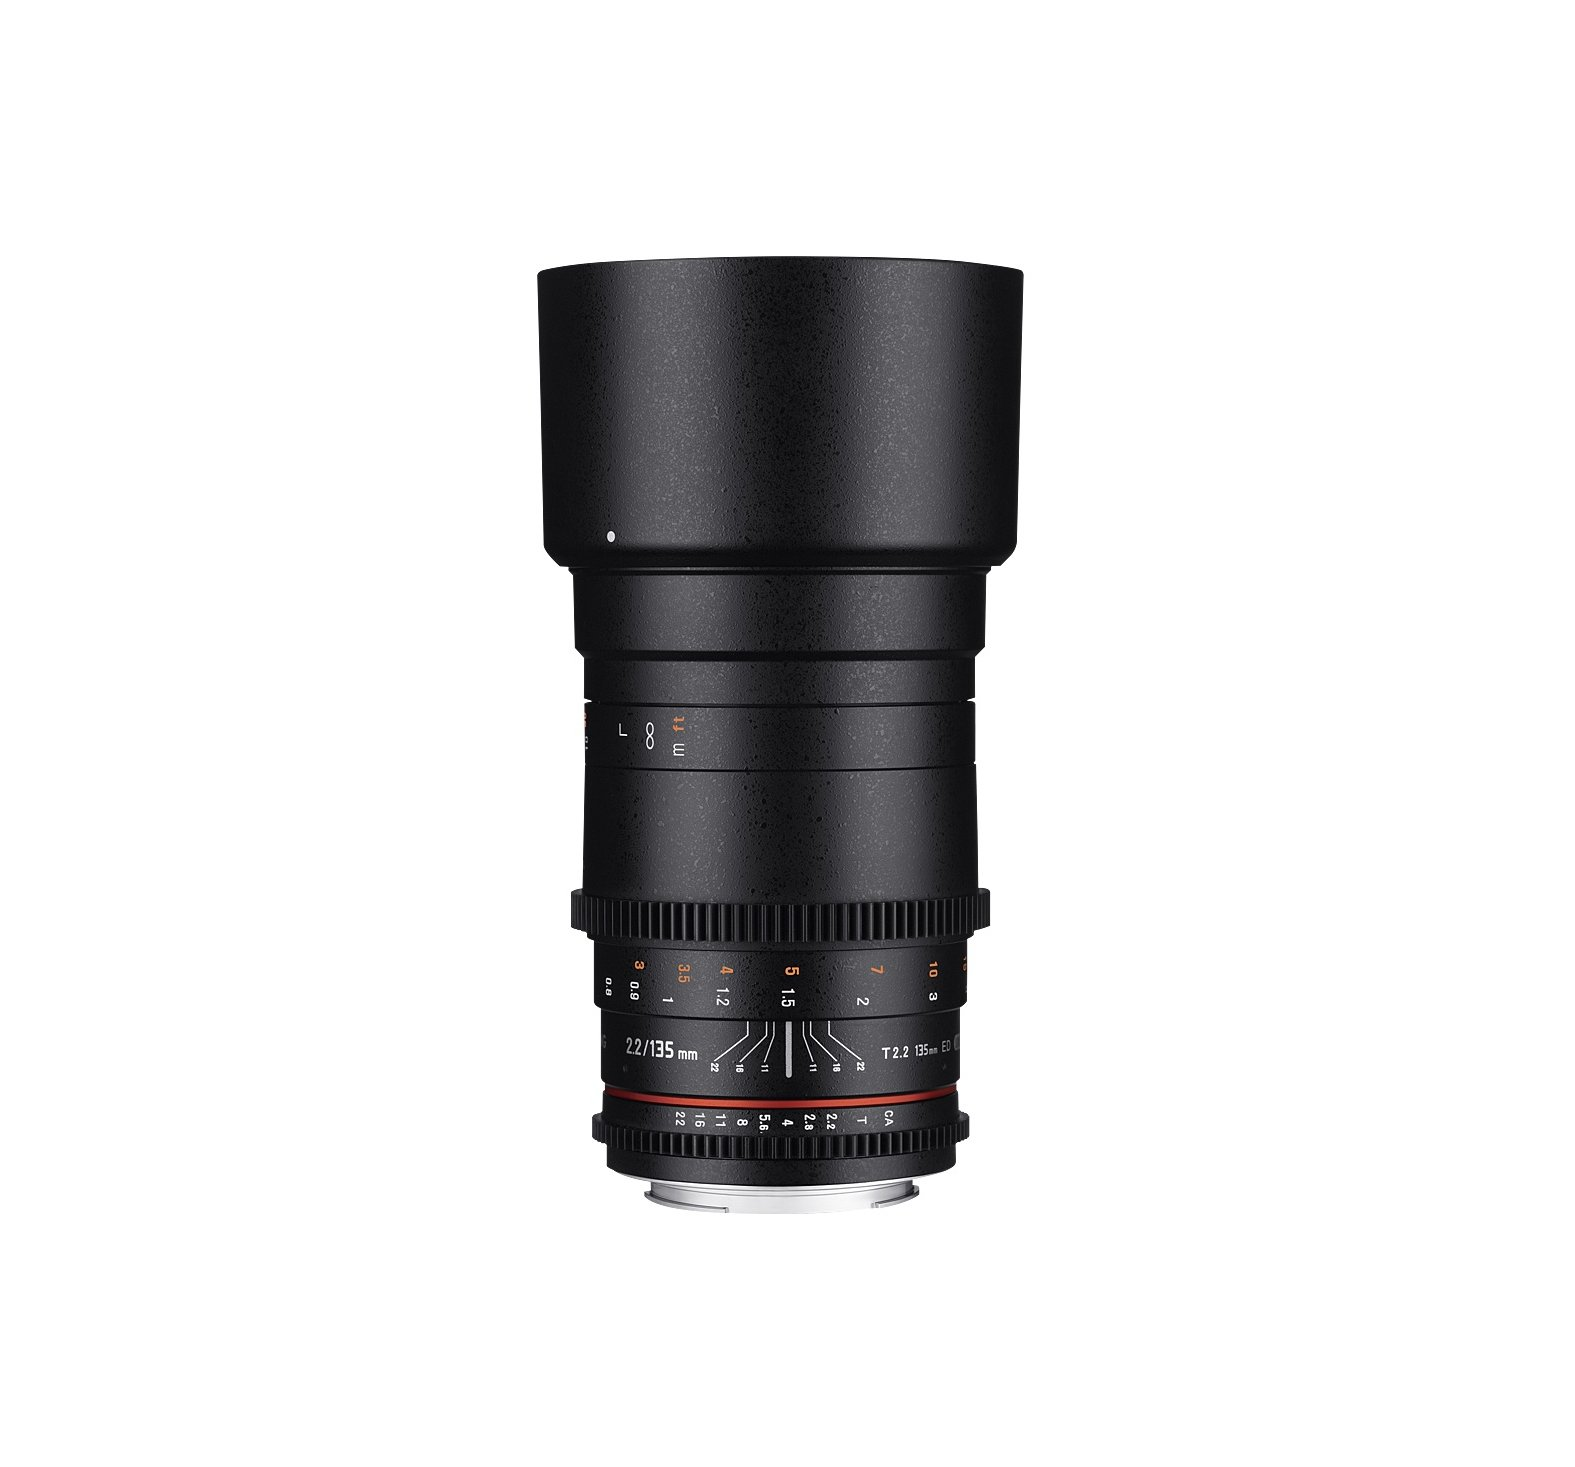 Rokinon Cine DS 135mm T2.2 Telephoto Cine Lens